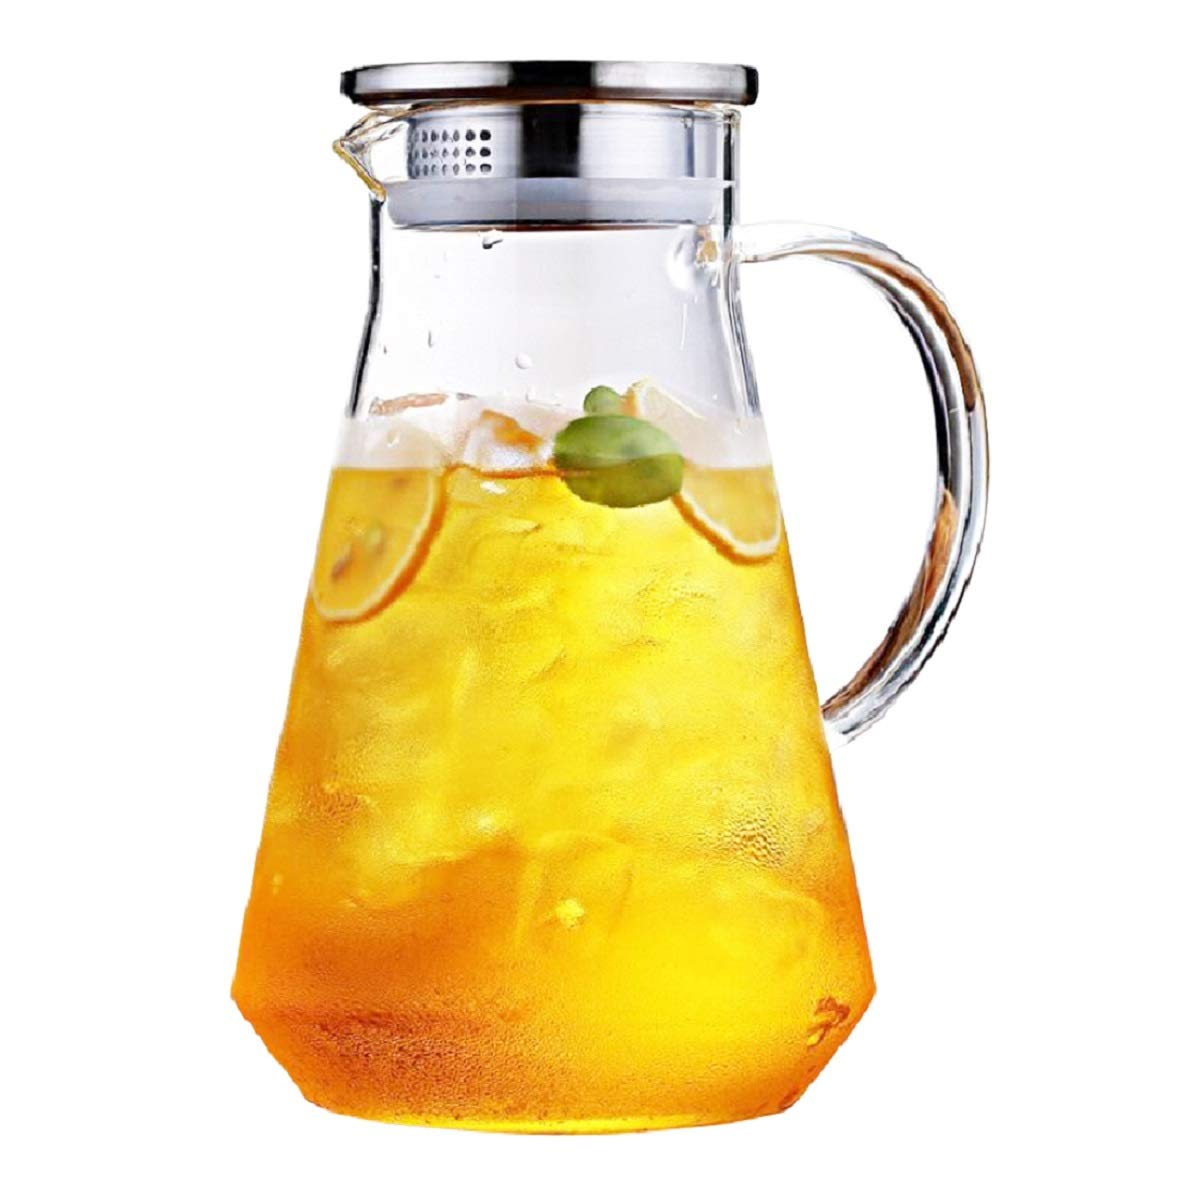 SmartHom 70 Oz Glass Pitcher, Drip Free Water Pitcher With Tight Lid and Pretty Brush